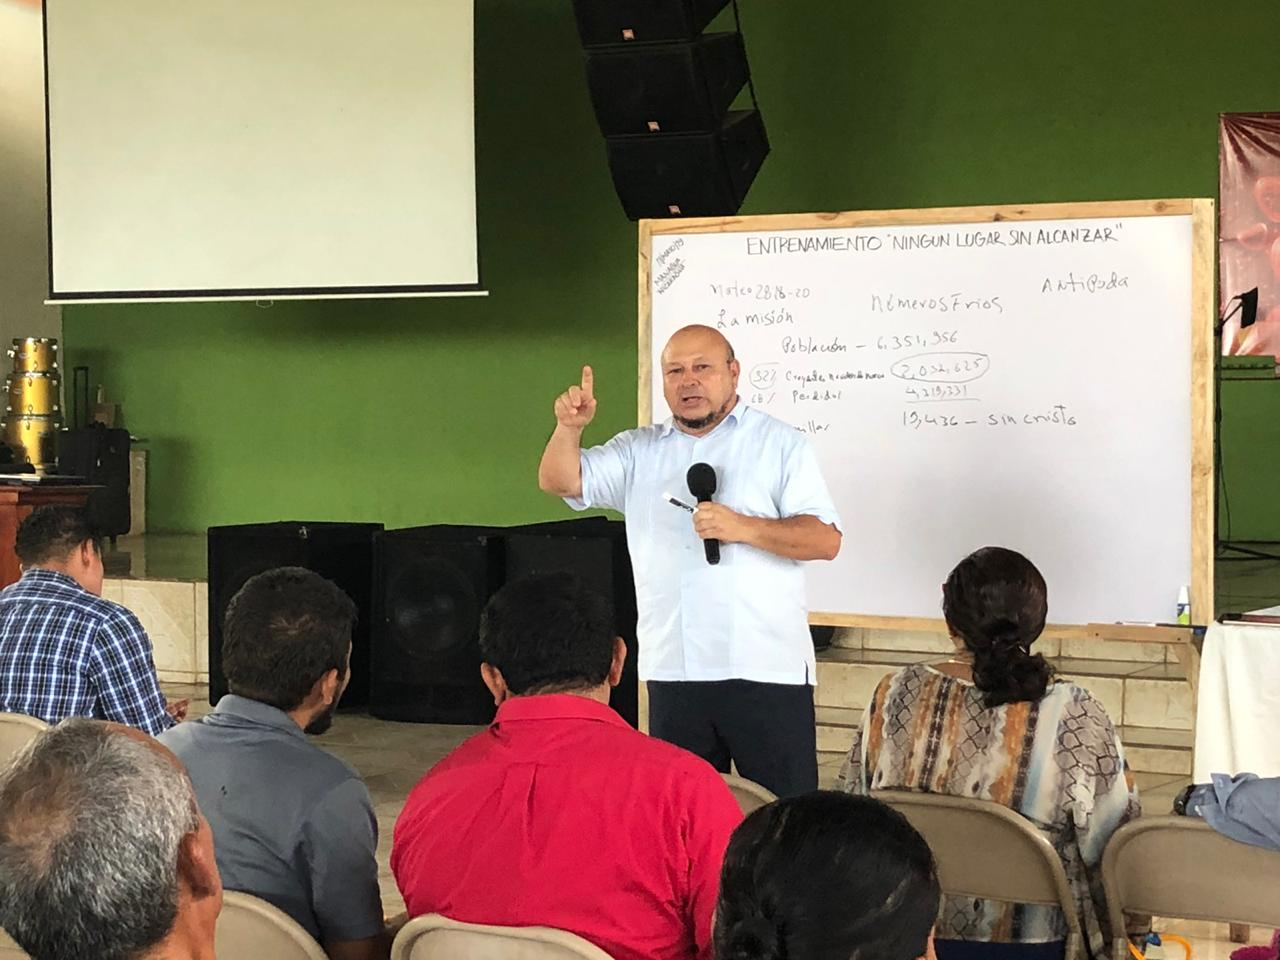 Connect Global Partner and friend, Pastor Allan Lorenzana, completing a training on evangelism around the world.